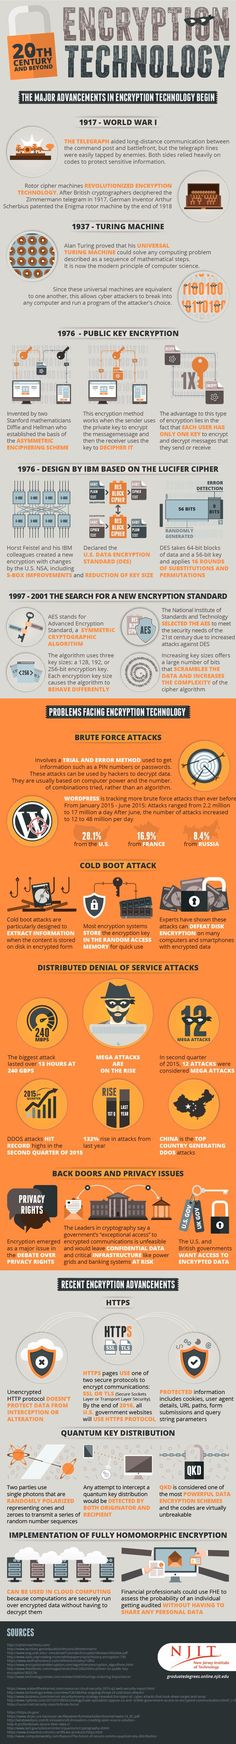 Major Advancements in Encryption Technology and Cyber Security - Imgur